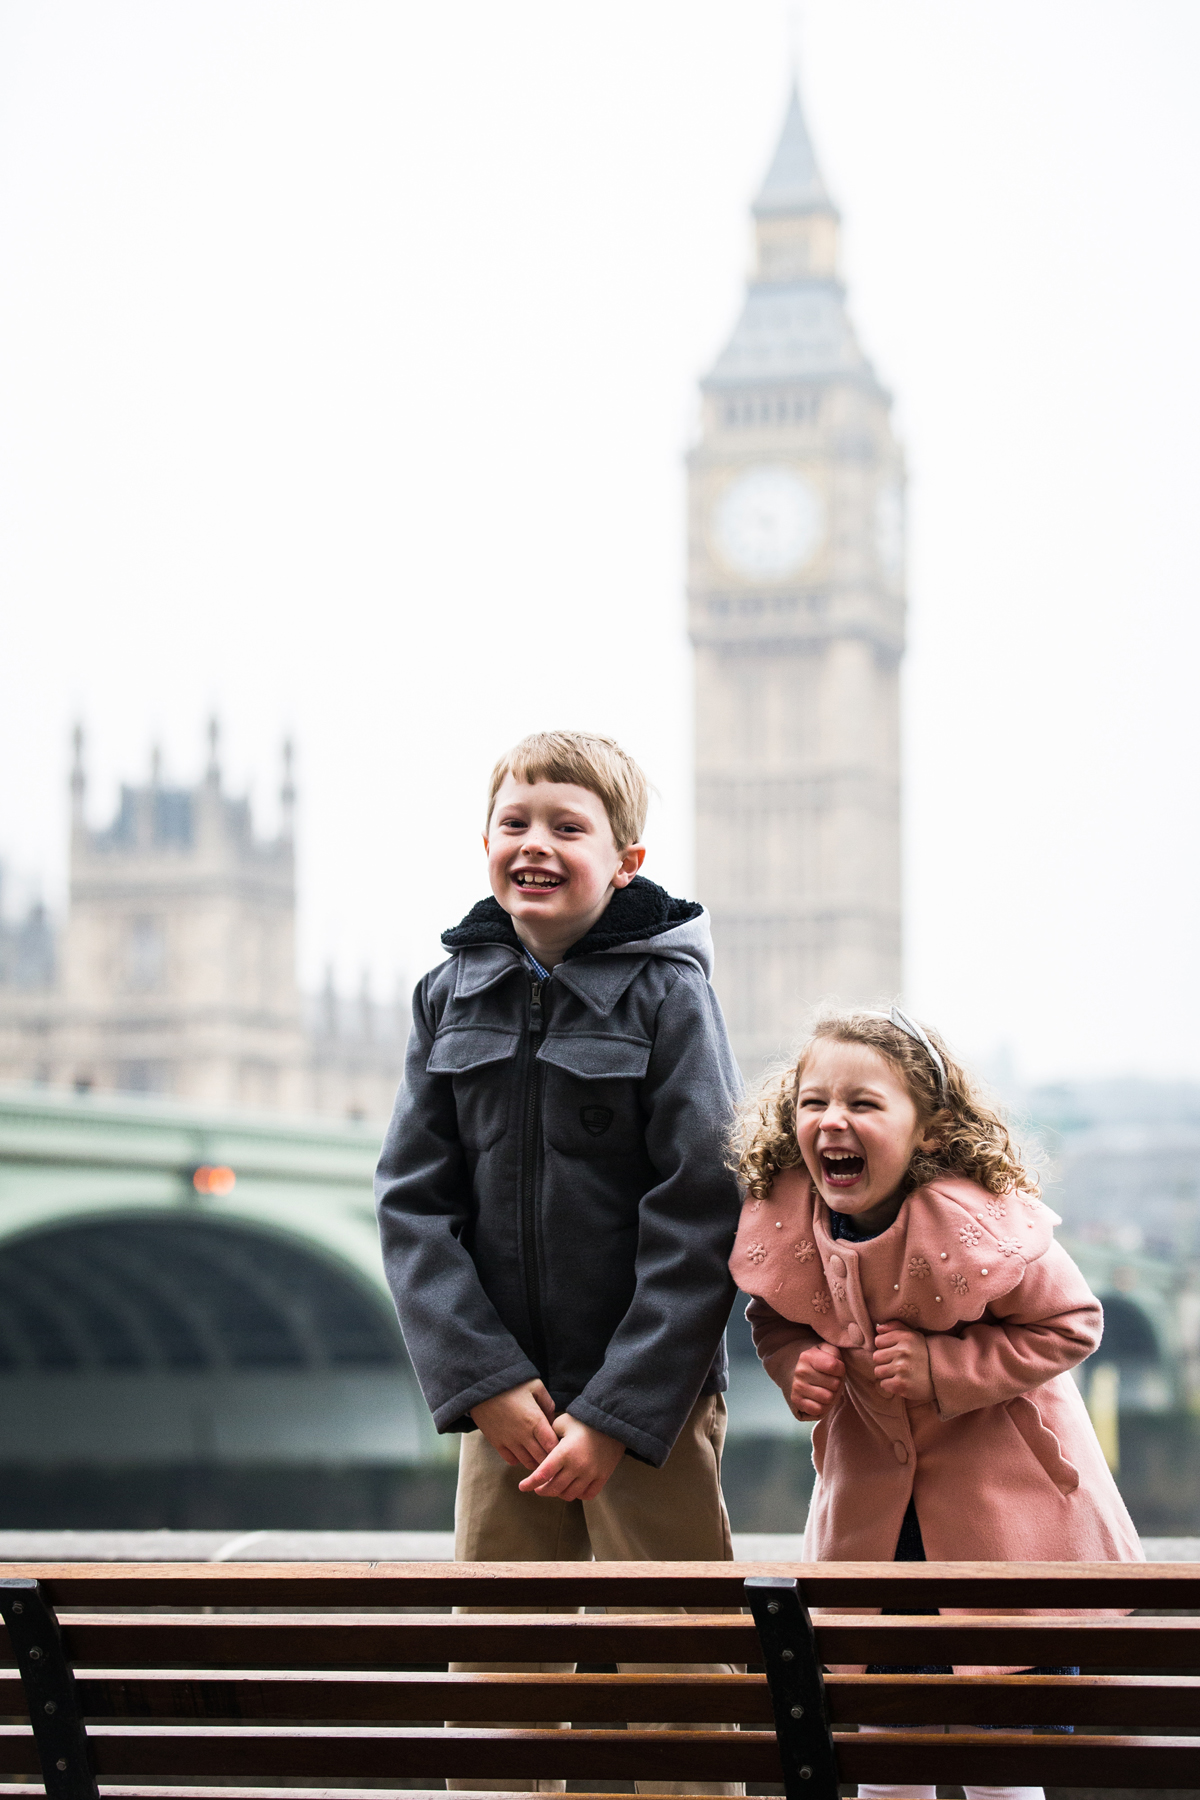 childs portrait, Big Ben, Westminster, London photo portrait